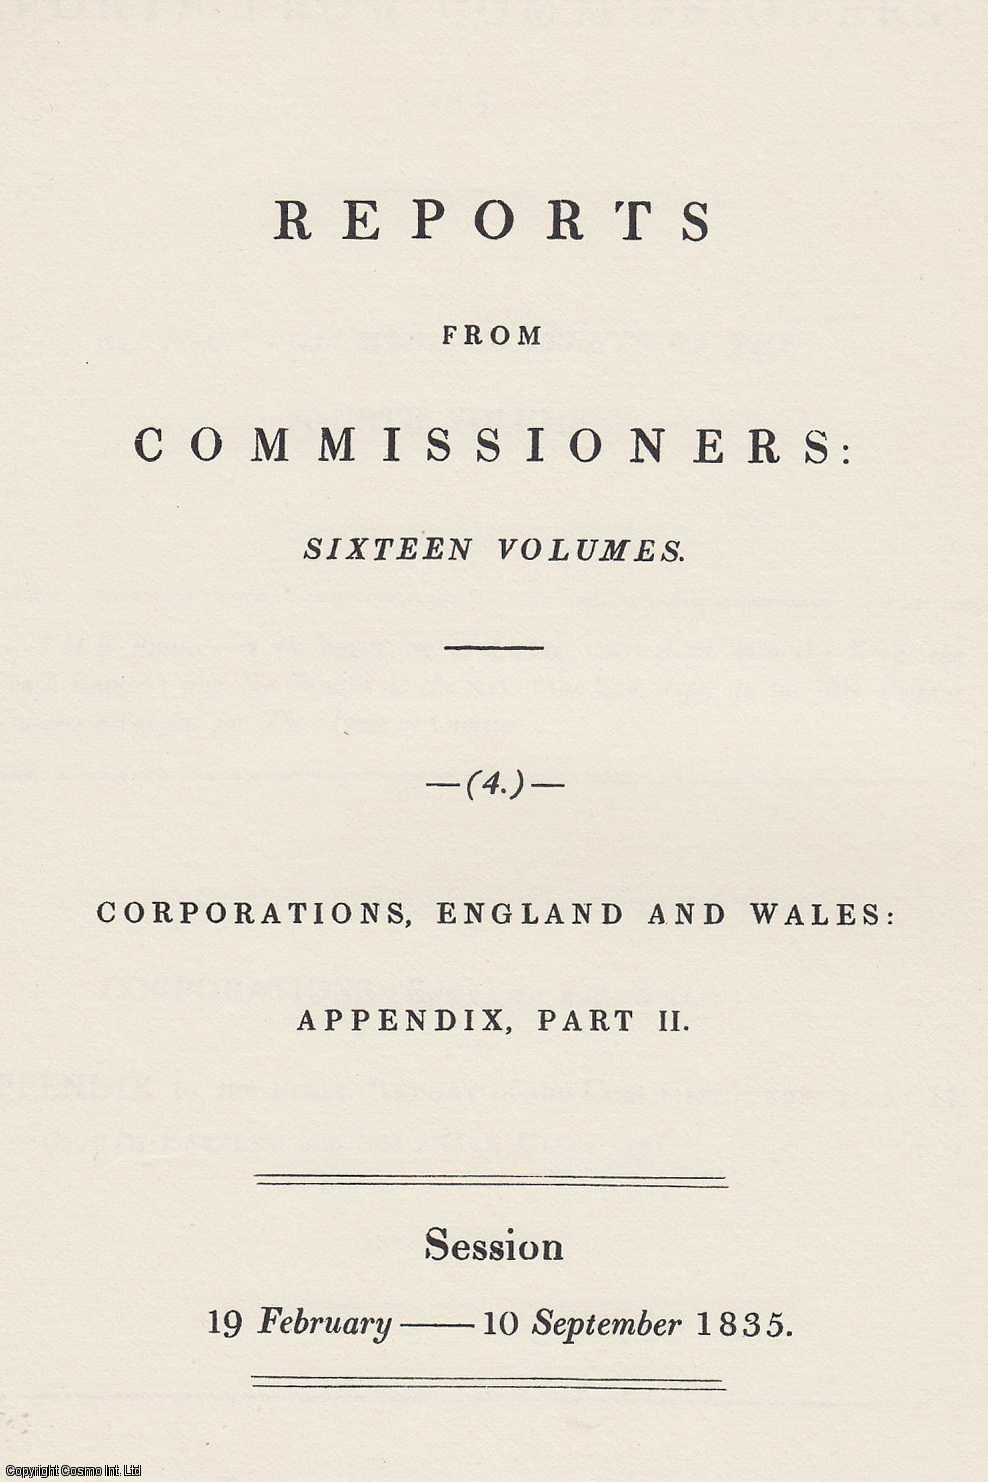 --- - 1835. Report on the Town of Basingstoke, Hampshire. Extracted from Reports from the Commissioners on Municipal Corporations in England and Wales. Reprinted by the Irish University Press.